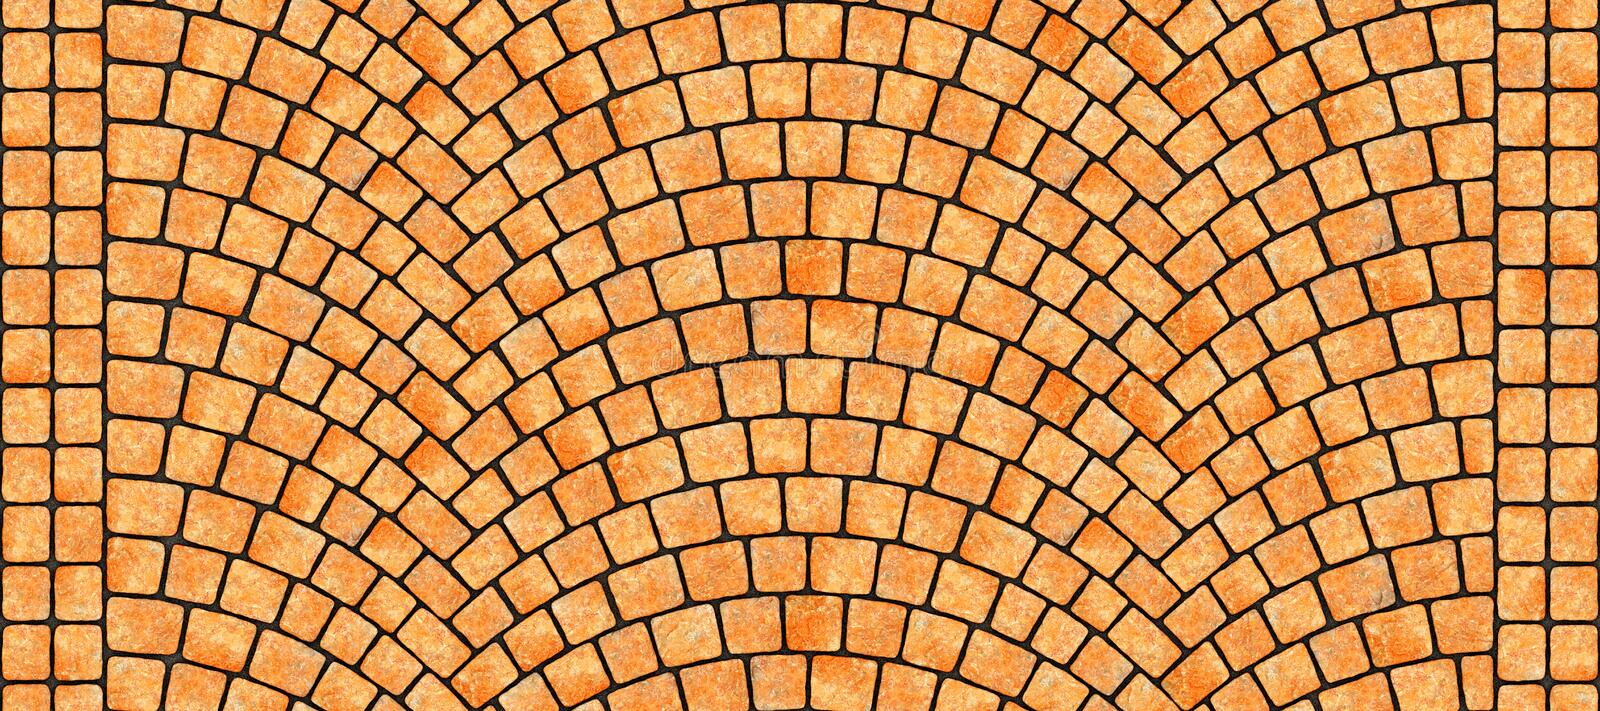 Road curved cobblestone texture 110. Cobblestone arched pavement road with edge courses at the sidewalk. Seamless tileable repeating 3D rendering texture stock illustration